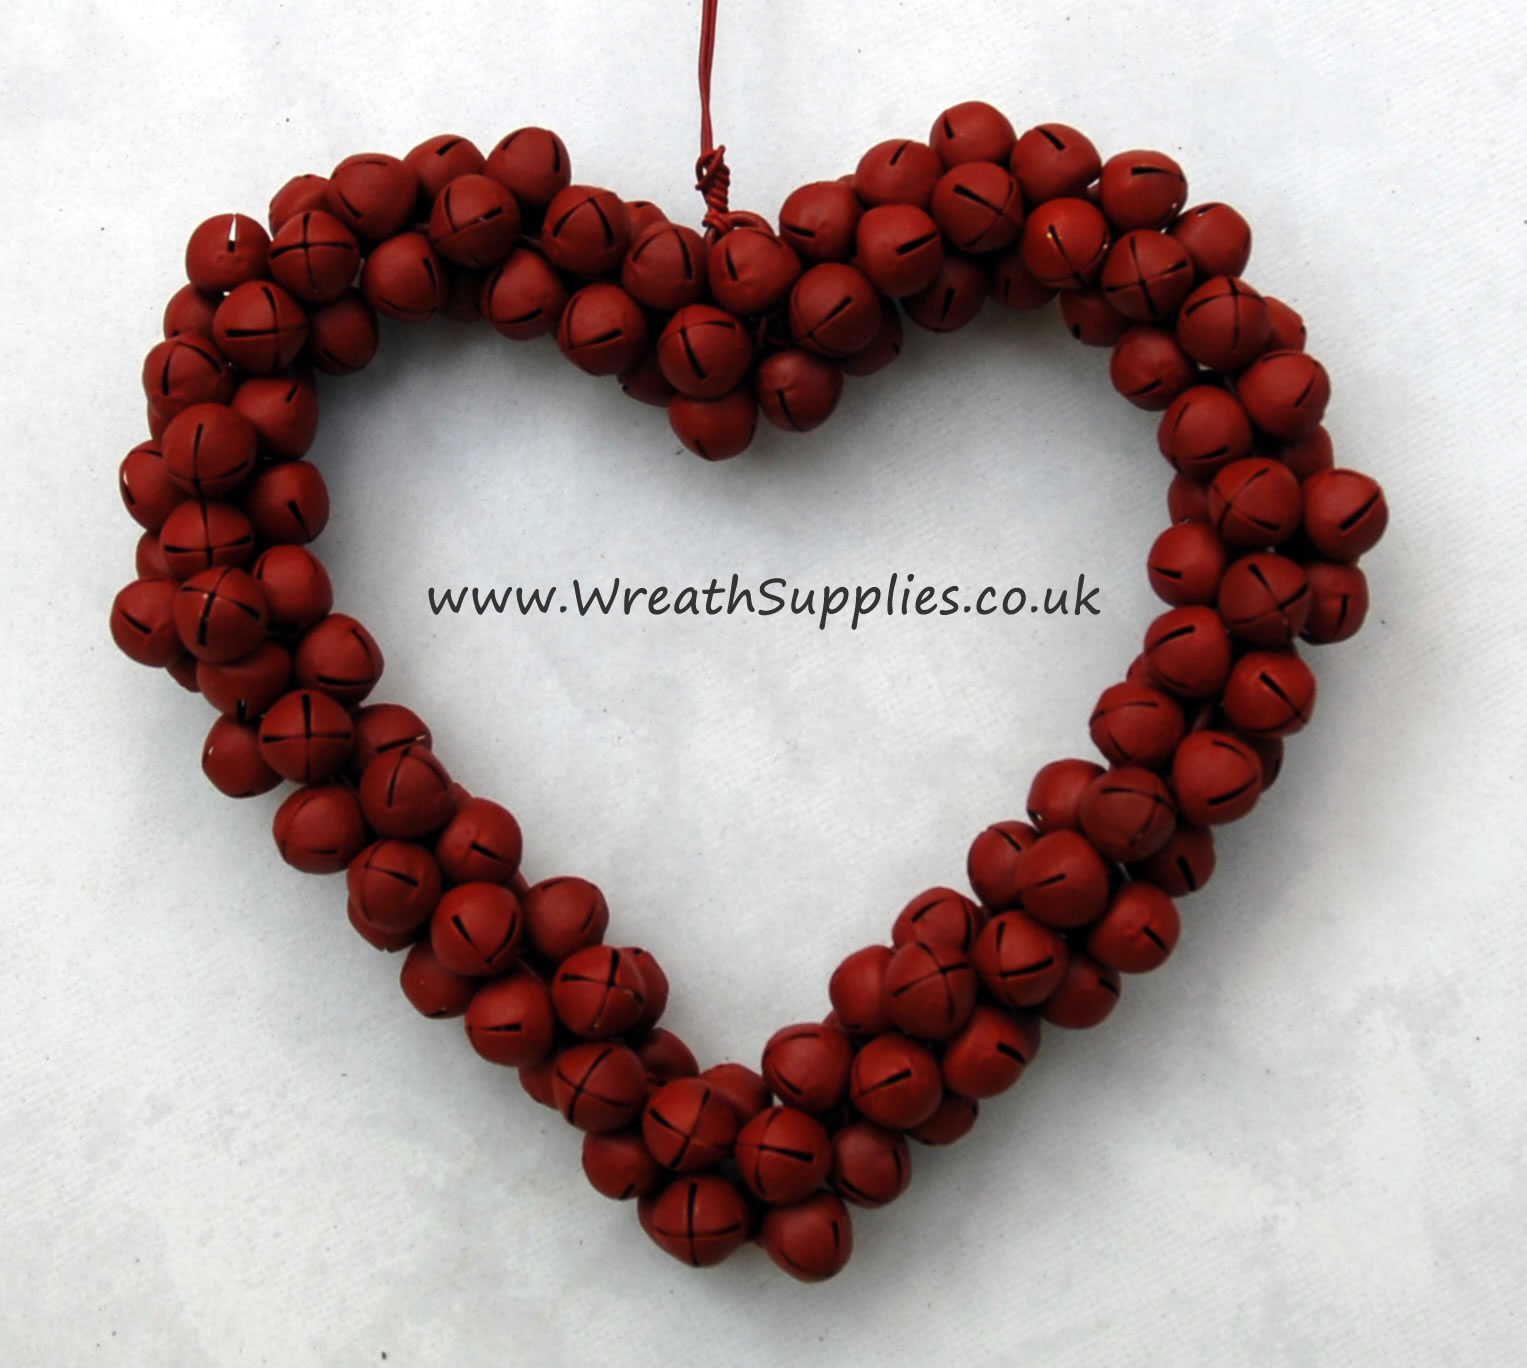 !0cm Red Jingle Bell Hearts for sale